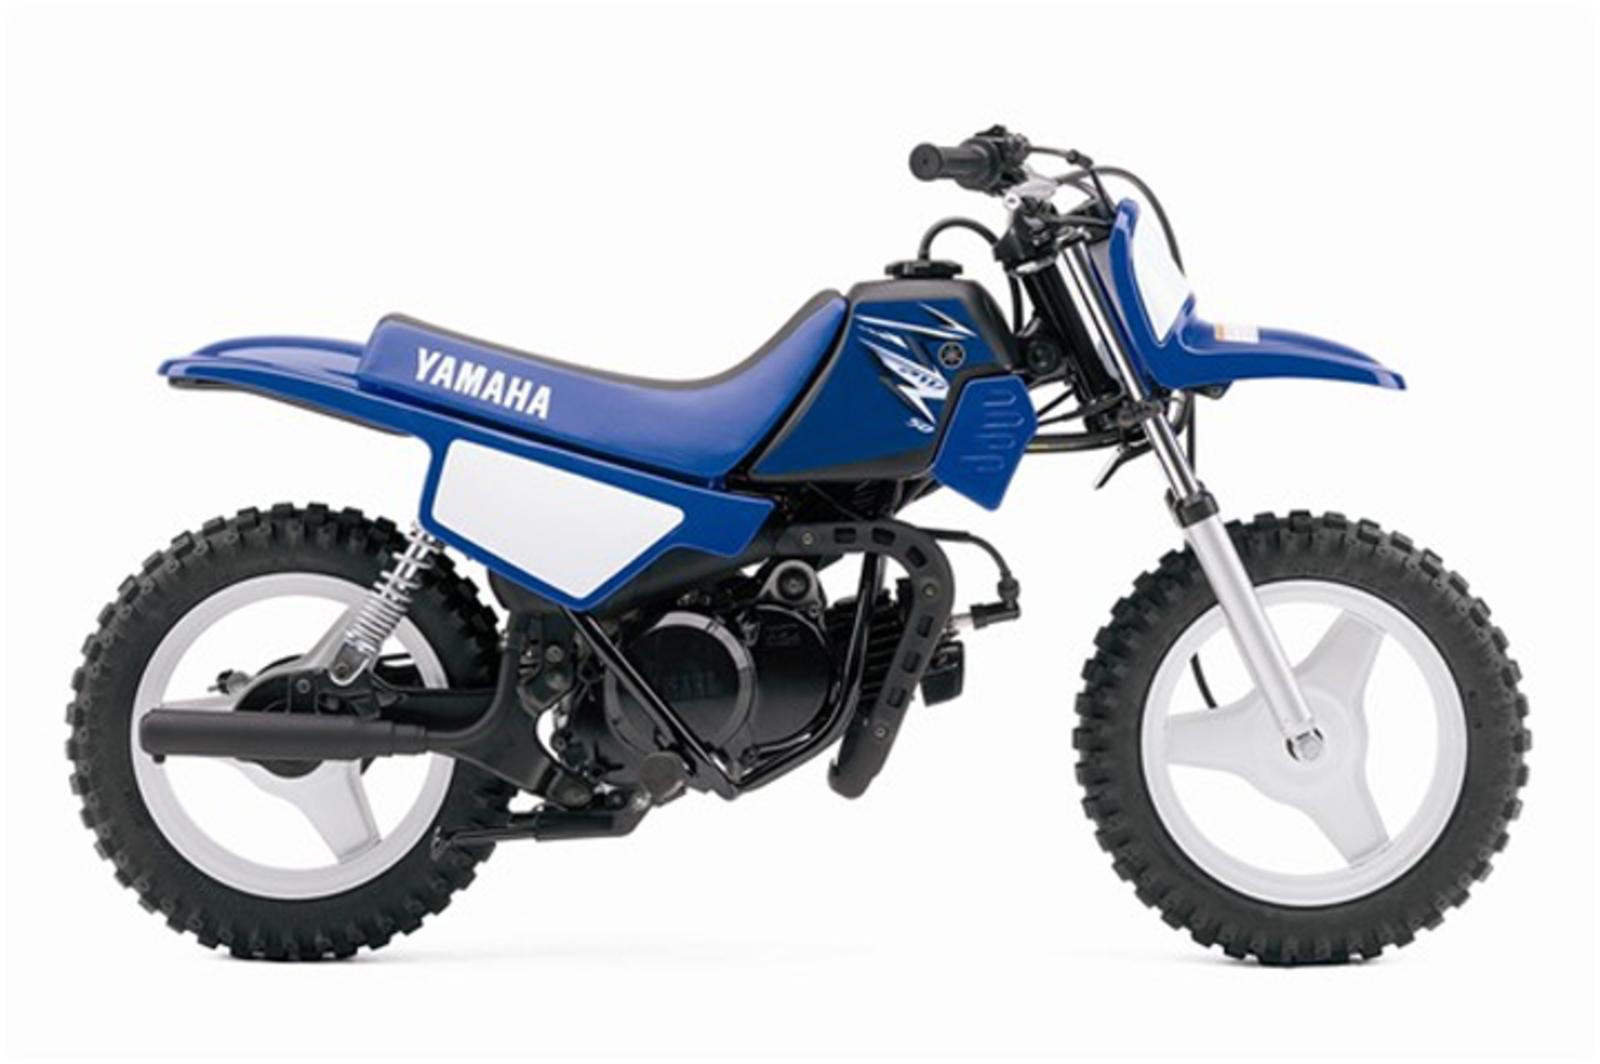 2009 yamaha pw50 review top speed for 1981 yamaha sr185 specs